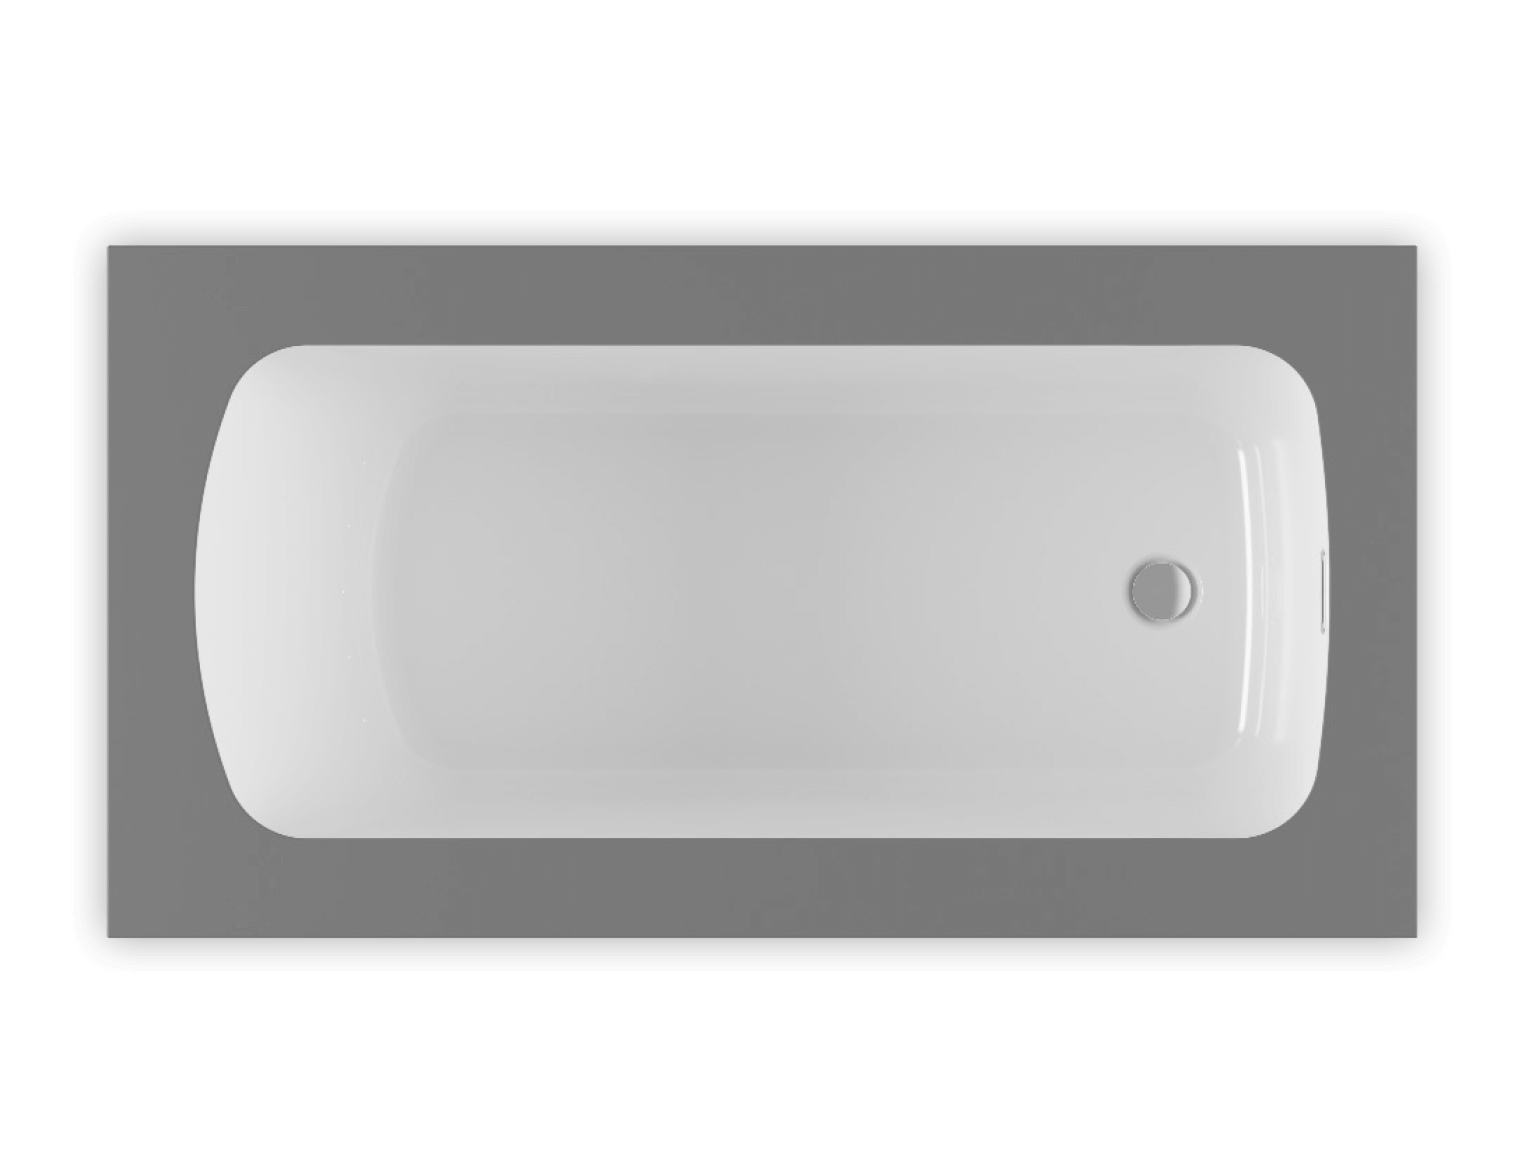 Monarch 6030 air jet bathtub for your modern bathroom